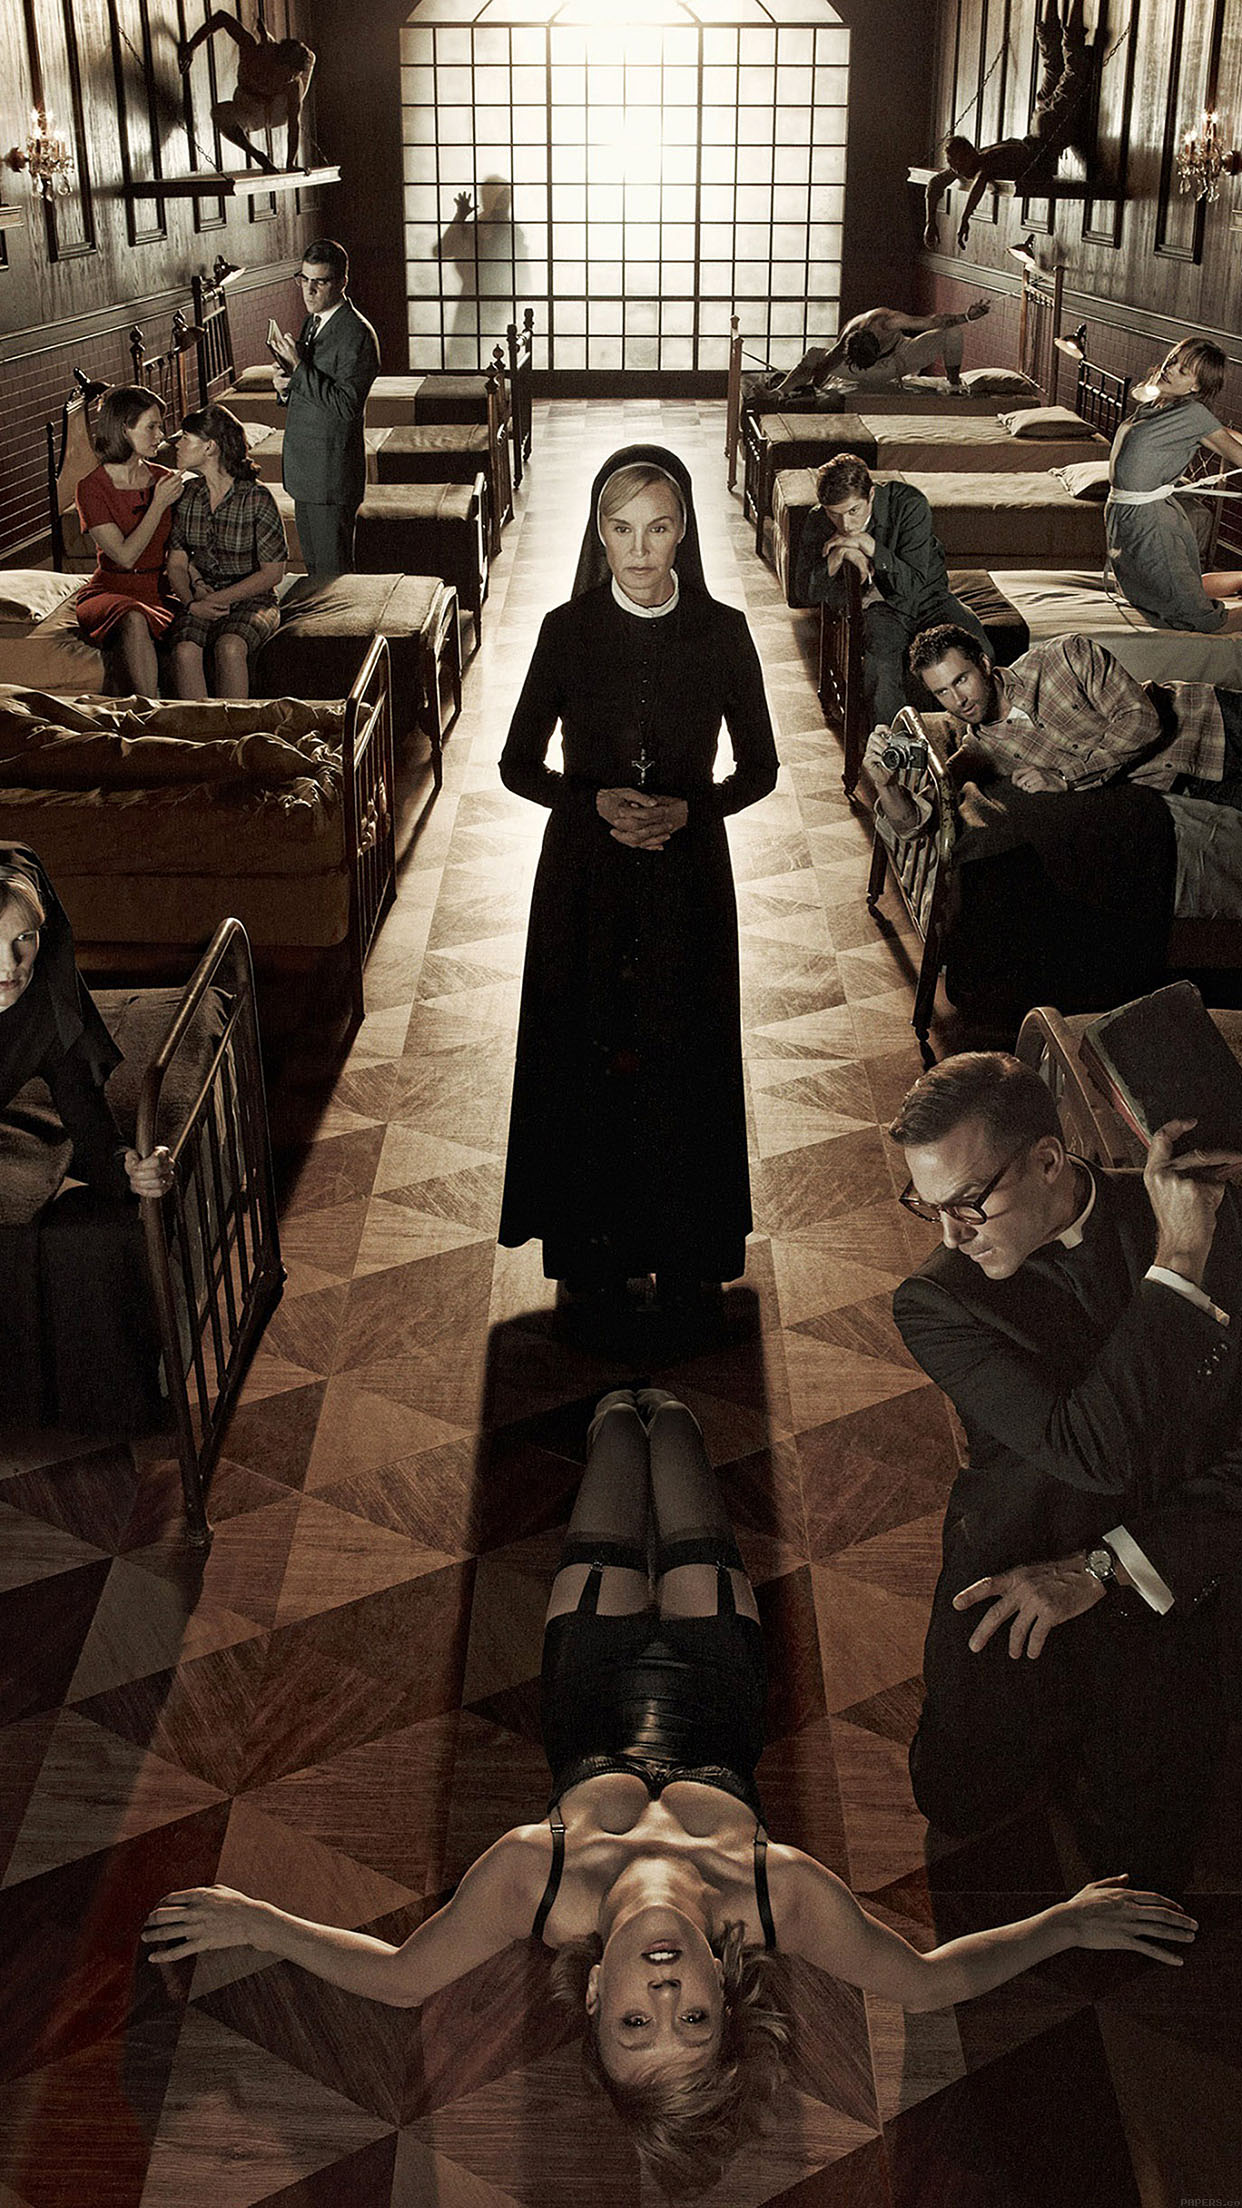 American Horror Story Wallpaper Iphone For Iphone X Iphonexpapers